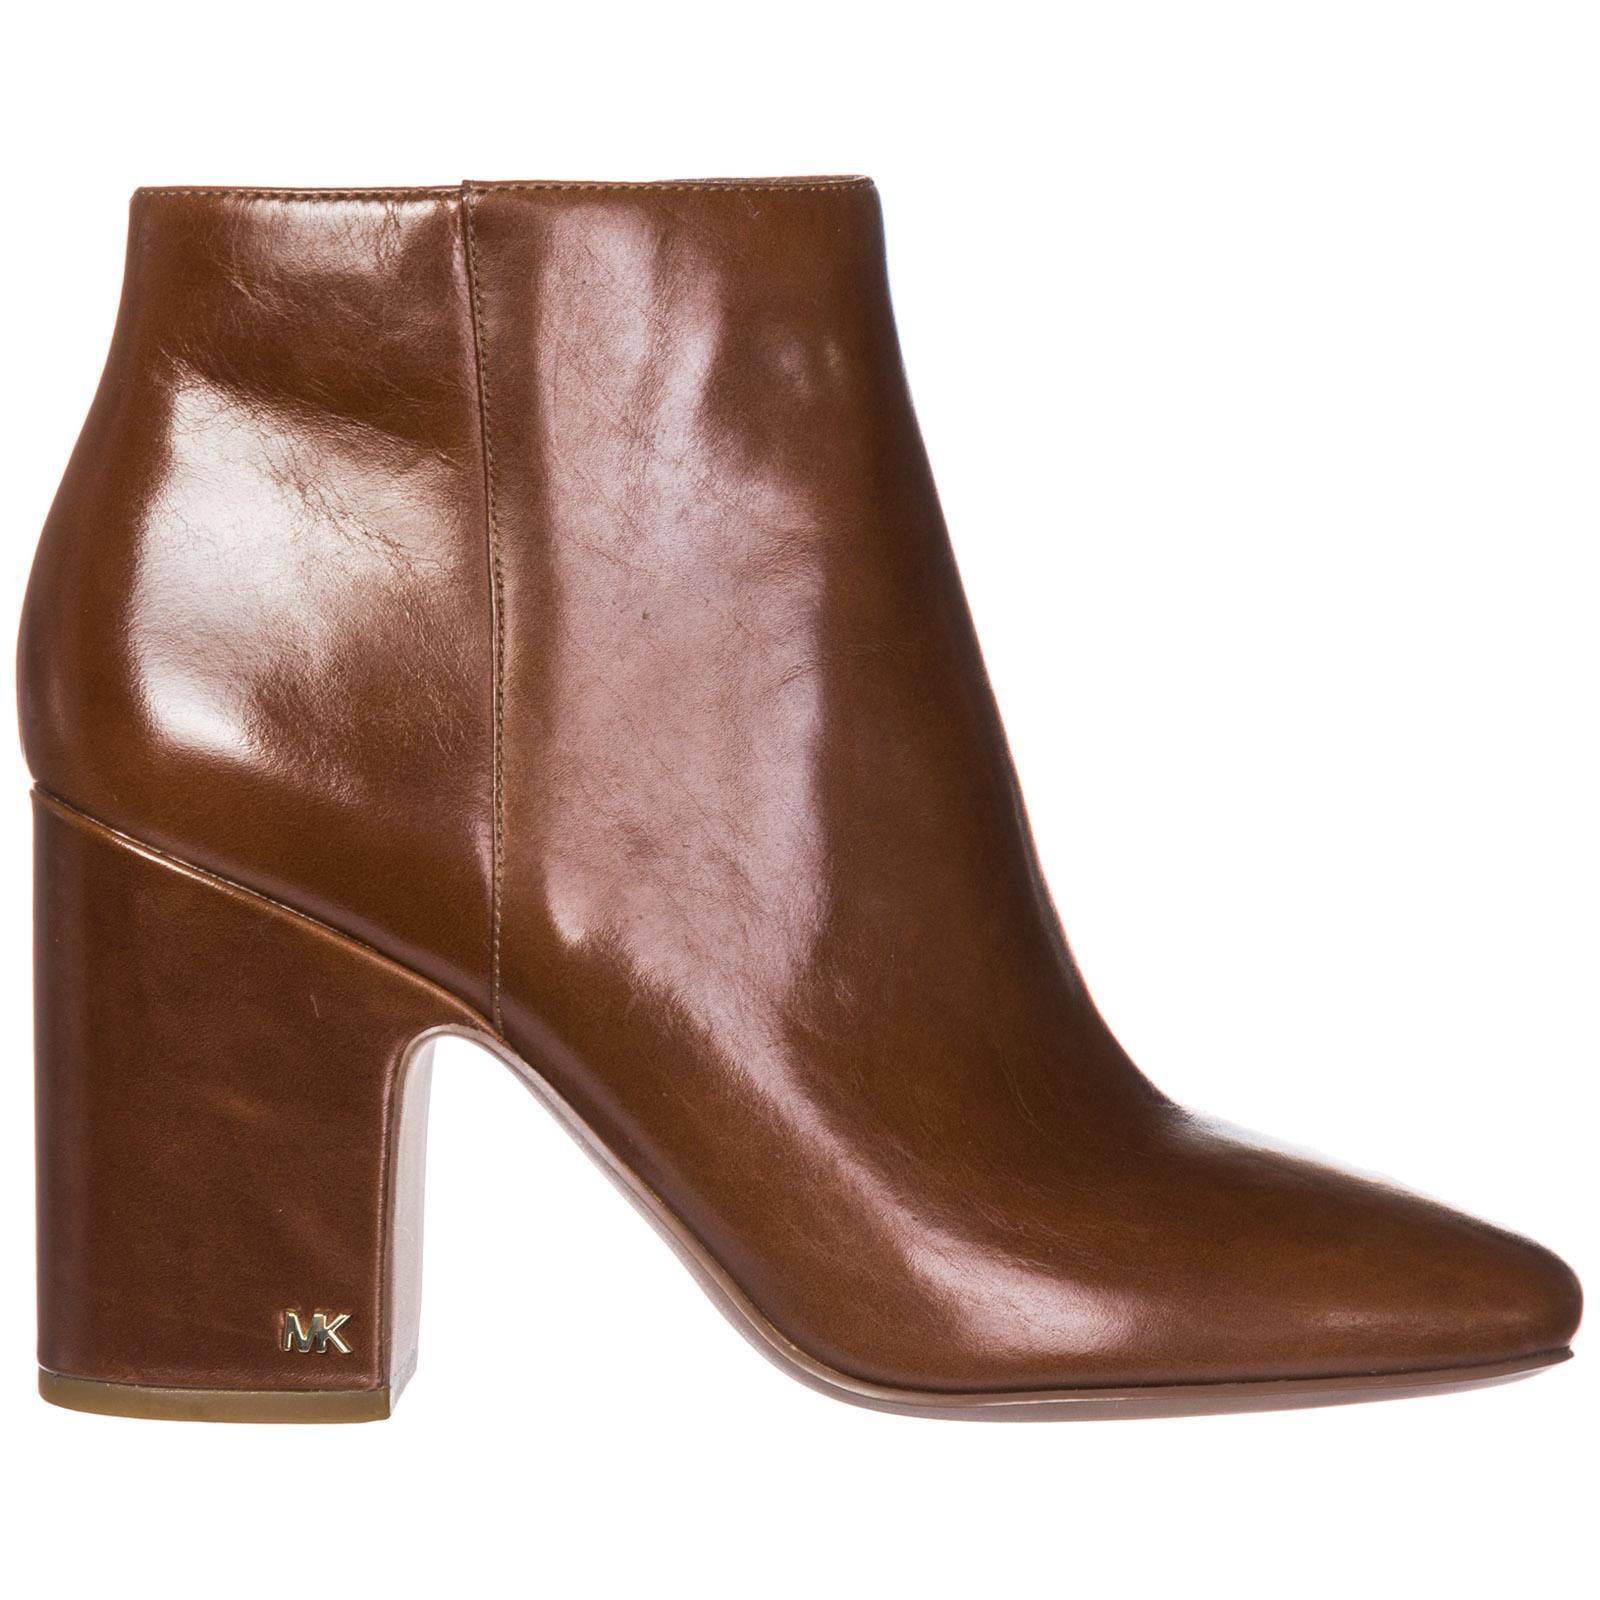 6da6614bd8 Women's Leather Heel Ankle Boots Booties Elaine in Brown